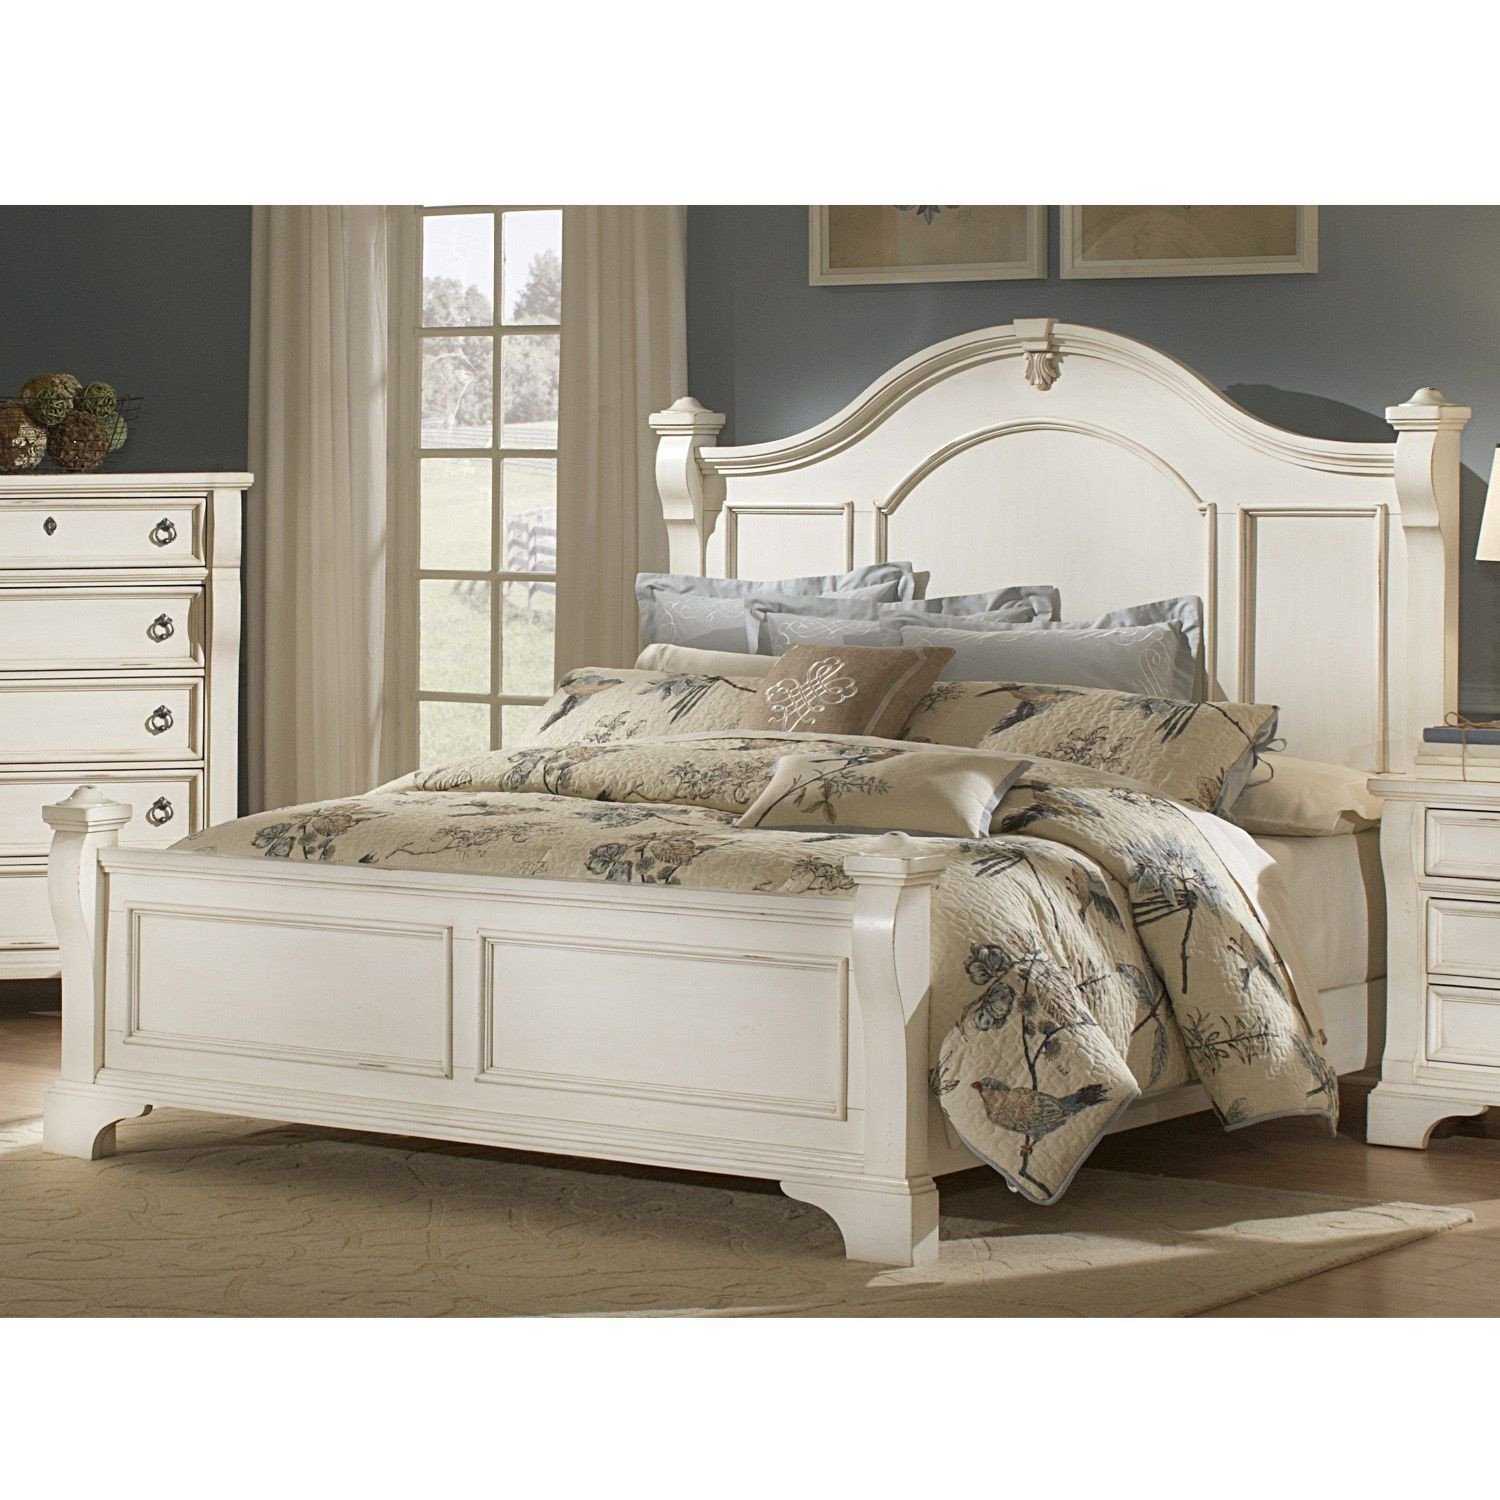 Queen Poster Bedroom Set Luxury Carlisle Poster Bed assorted Sizes Sam S Club